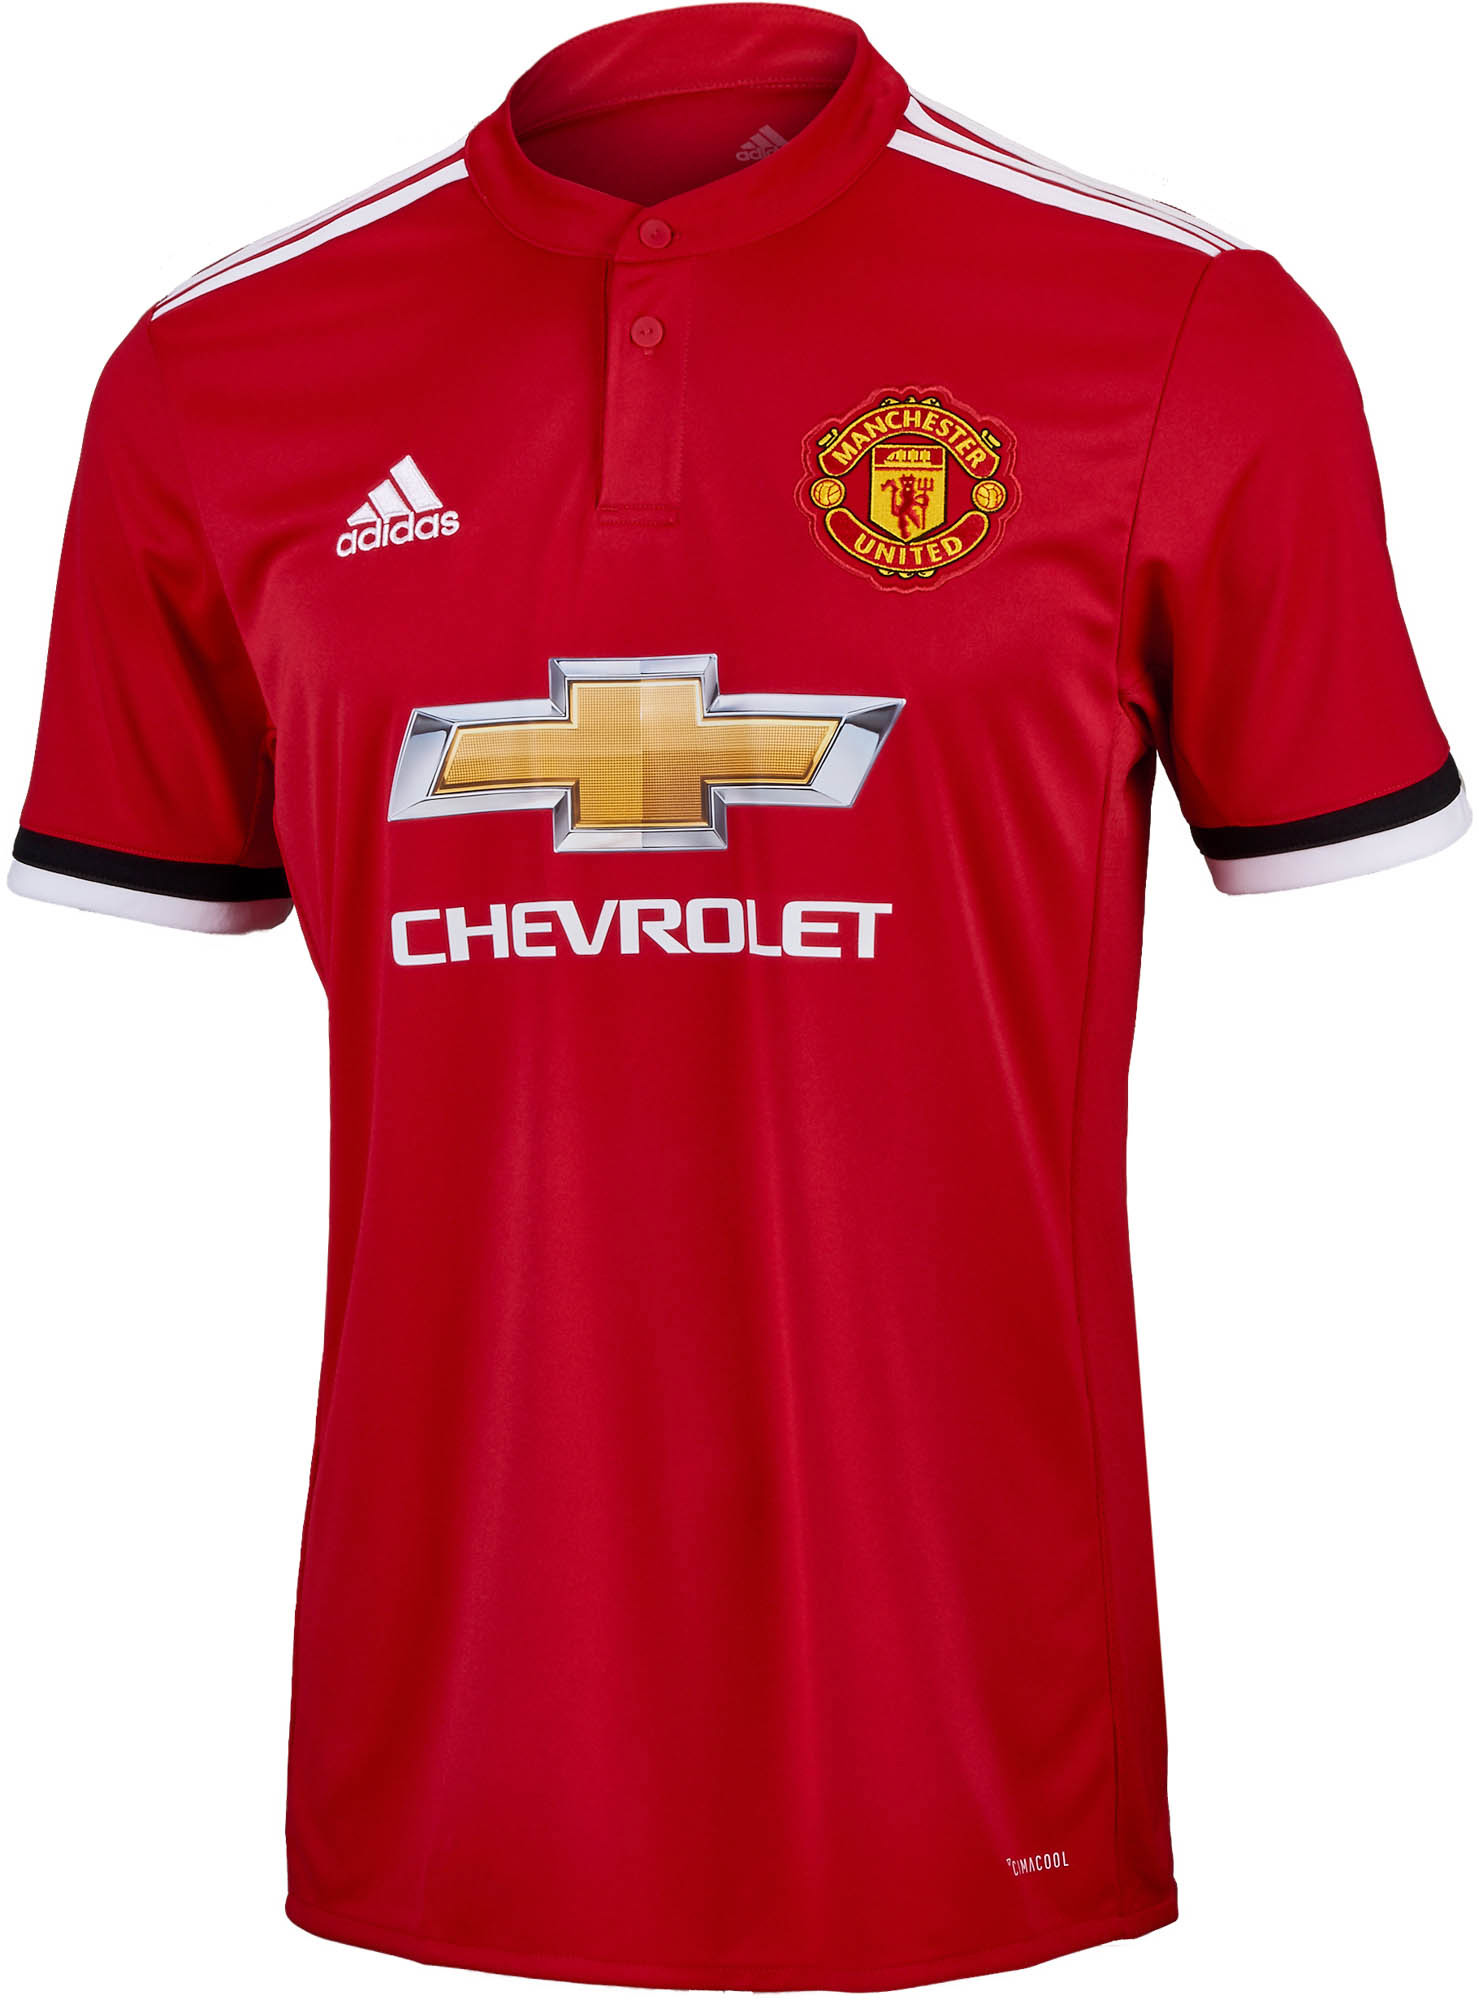 5cb1bfe9f adidas Kids Manchester United Home Jersey 2017-18 - Soccer Master